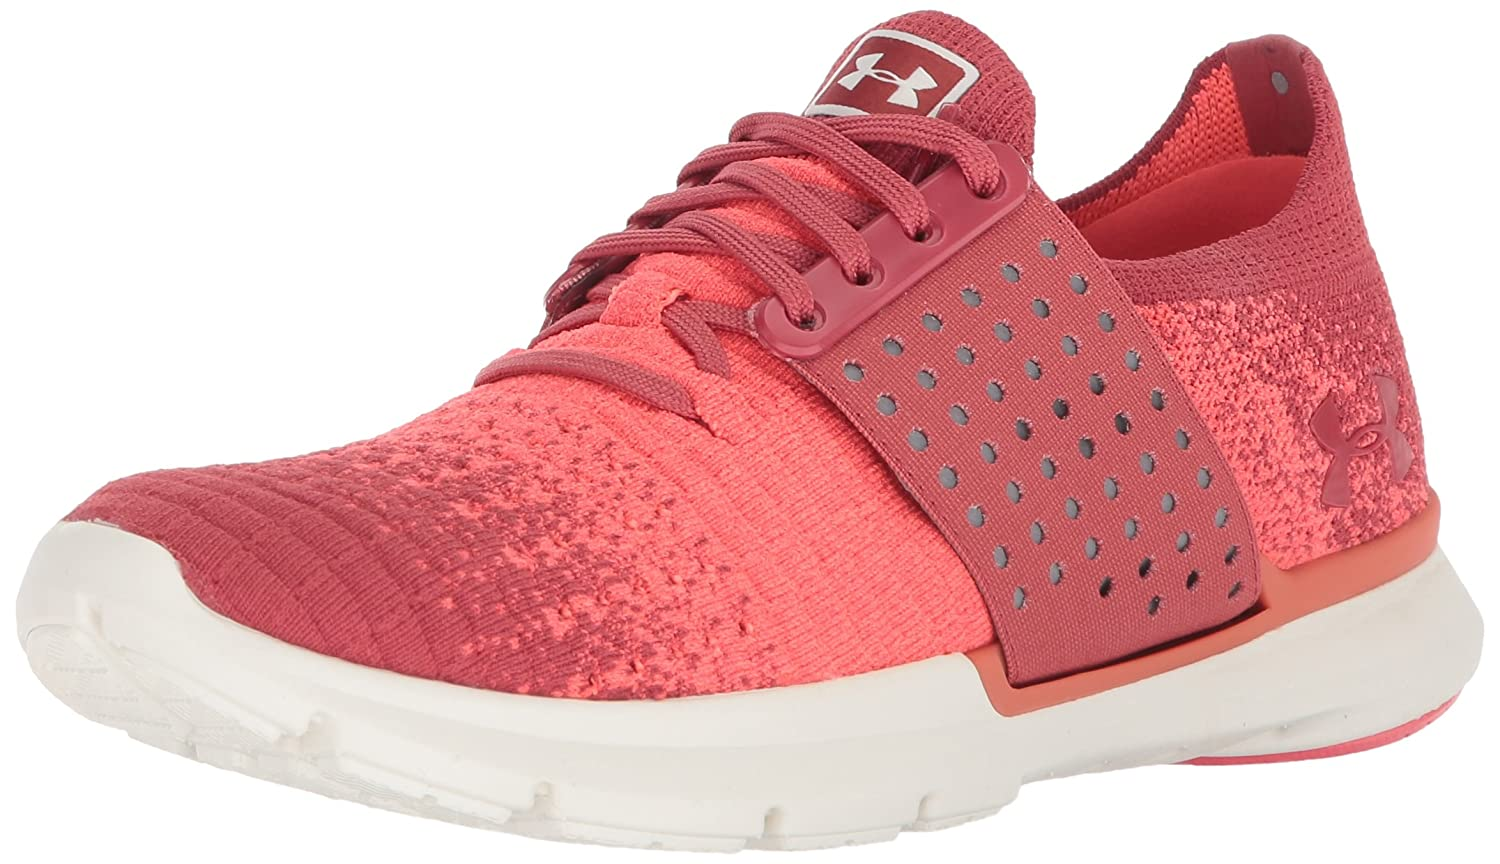 Under Armour Women's Speedform Slingwrap Fade Running Shoe B071NTFC12 9 M US|Rustic Red (601)/Success